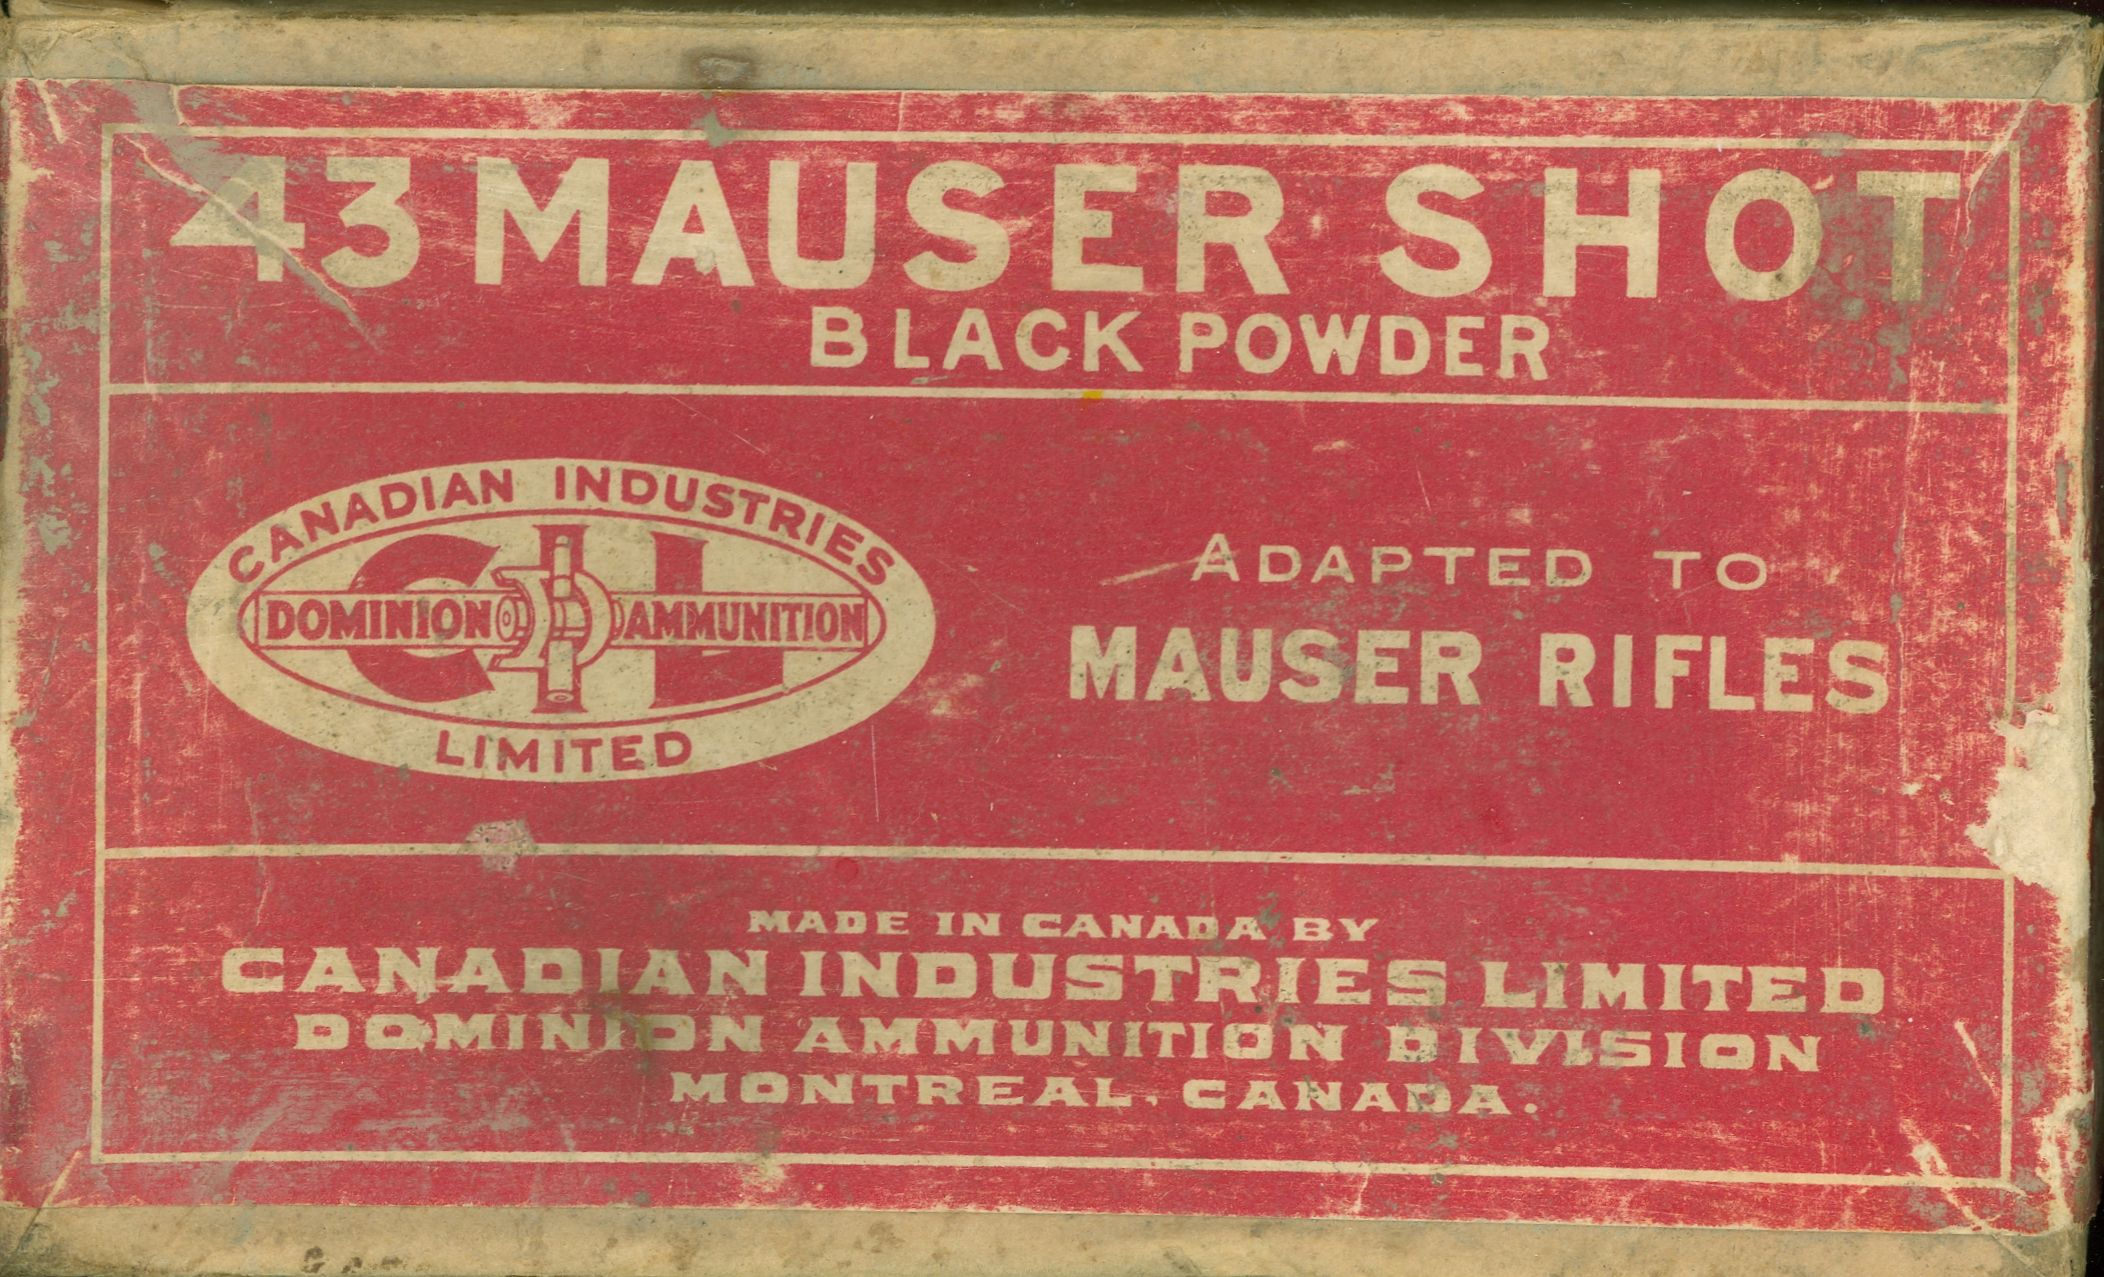 43%20mauser%20SHOT%20CIL%20Box%20with%20Dominian%20Ammunition%20Division%20on%20it